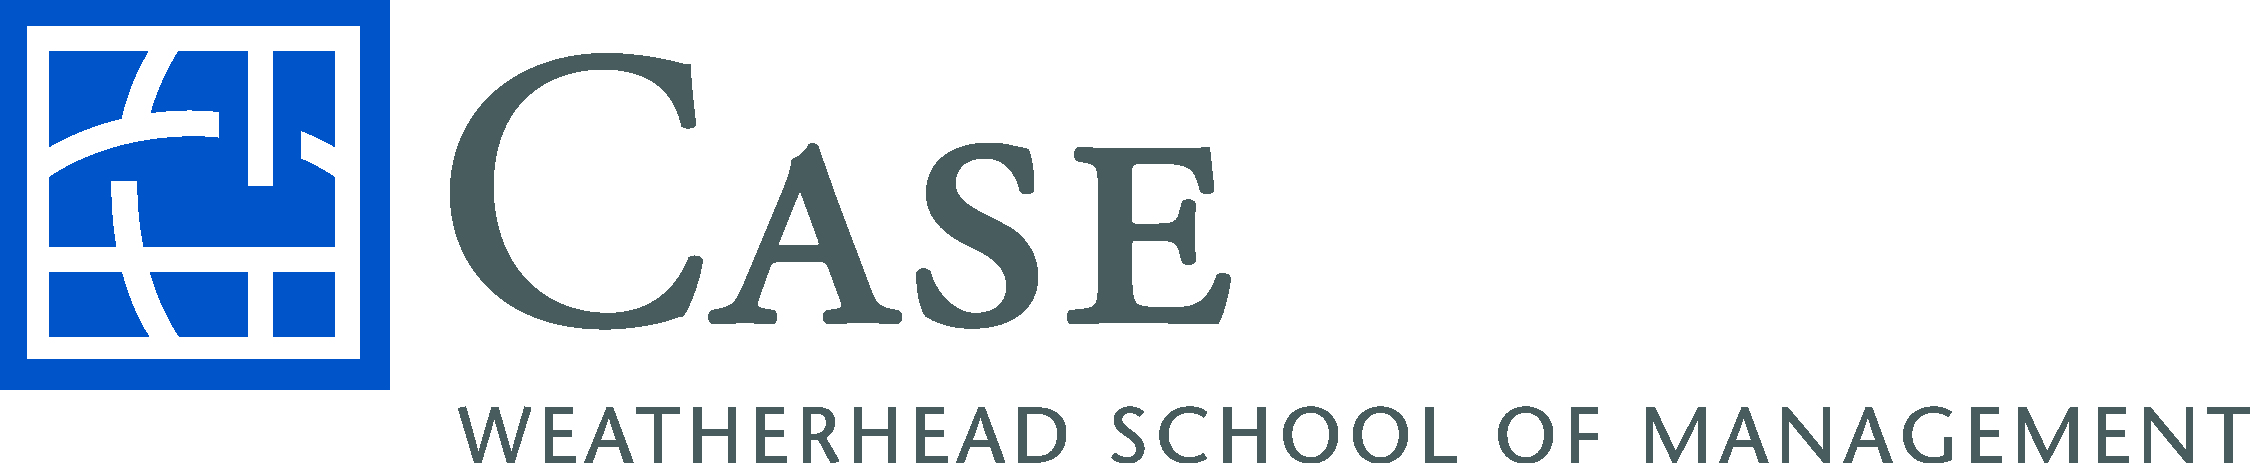 Case's Weatherhead School of Management Announces the First International On-line conference for Business as Agent of World Benefit Image